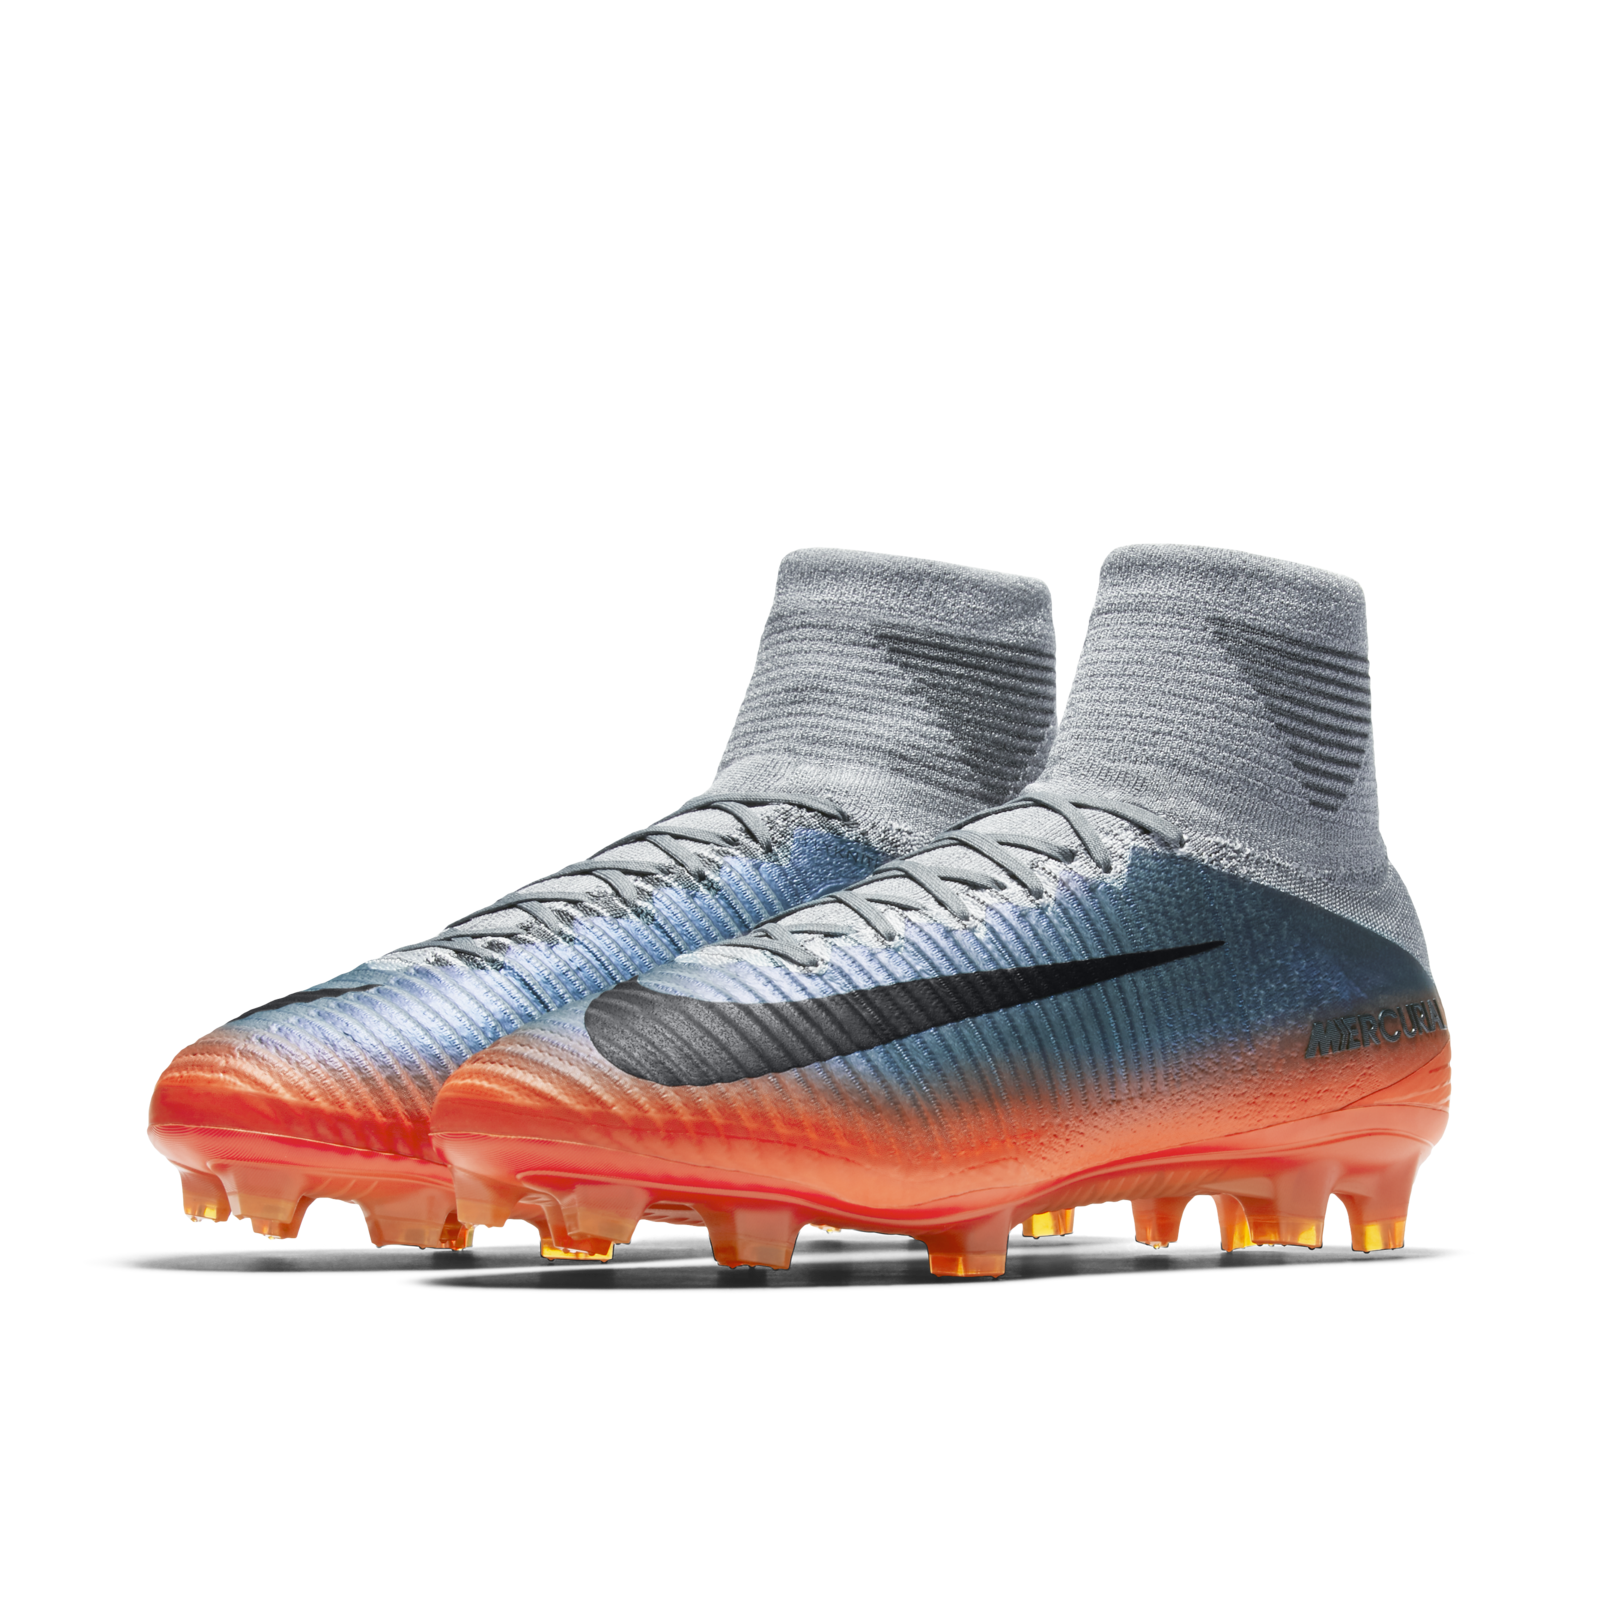 Cristiano Ronaldo S New Boots Recall His Shift To Number 7 Nike Football Boots Nike Football Kids Soccer Cleats